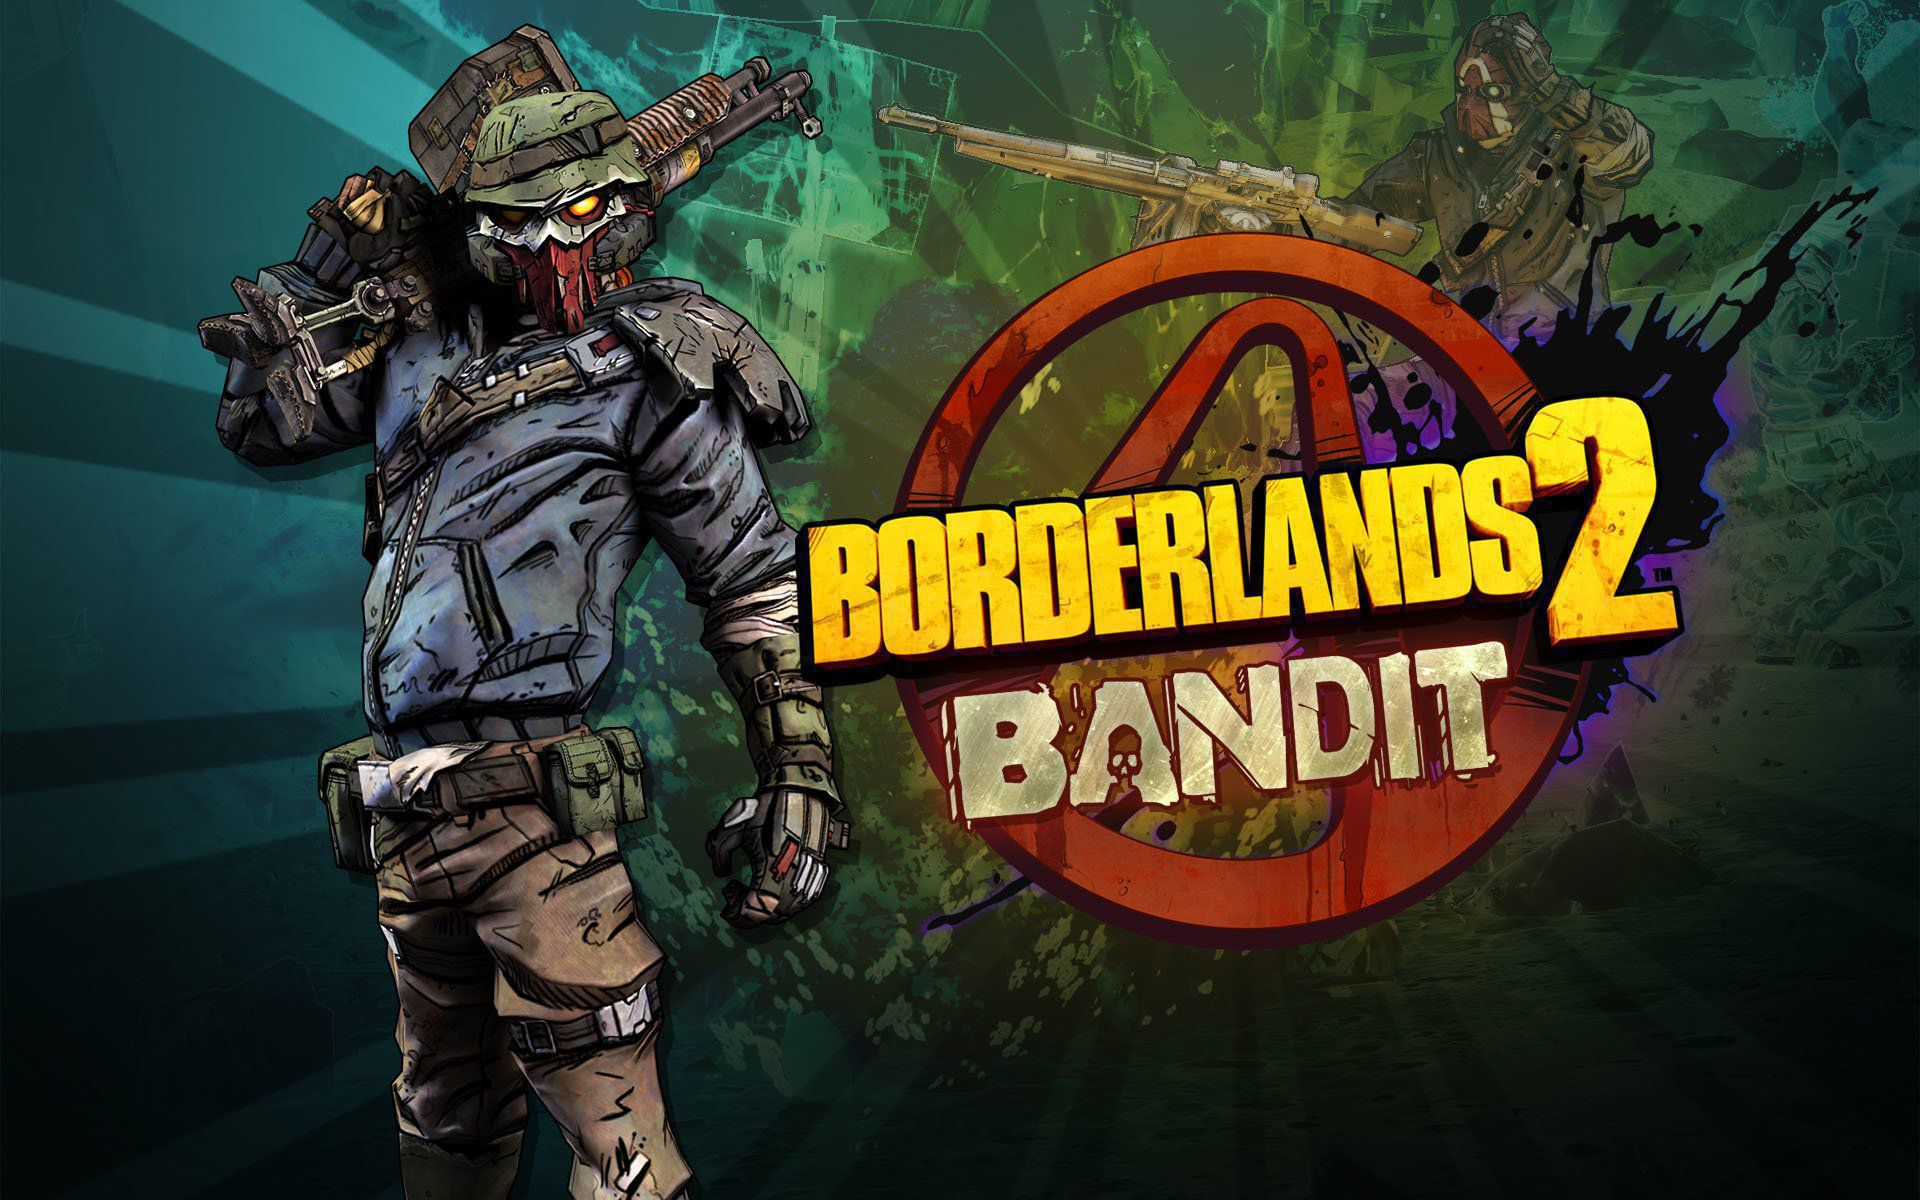 Borderlands 2 Beautiful